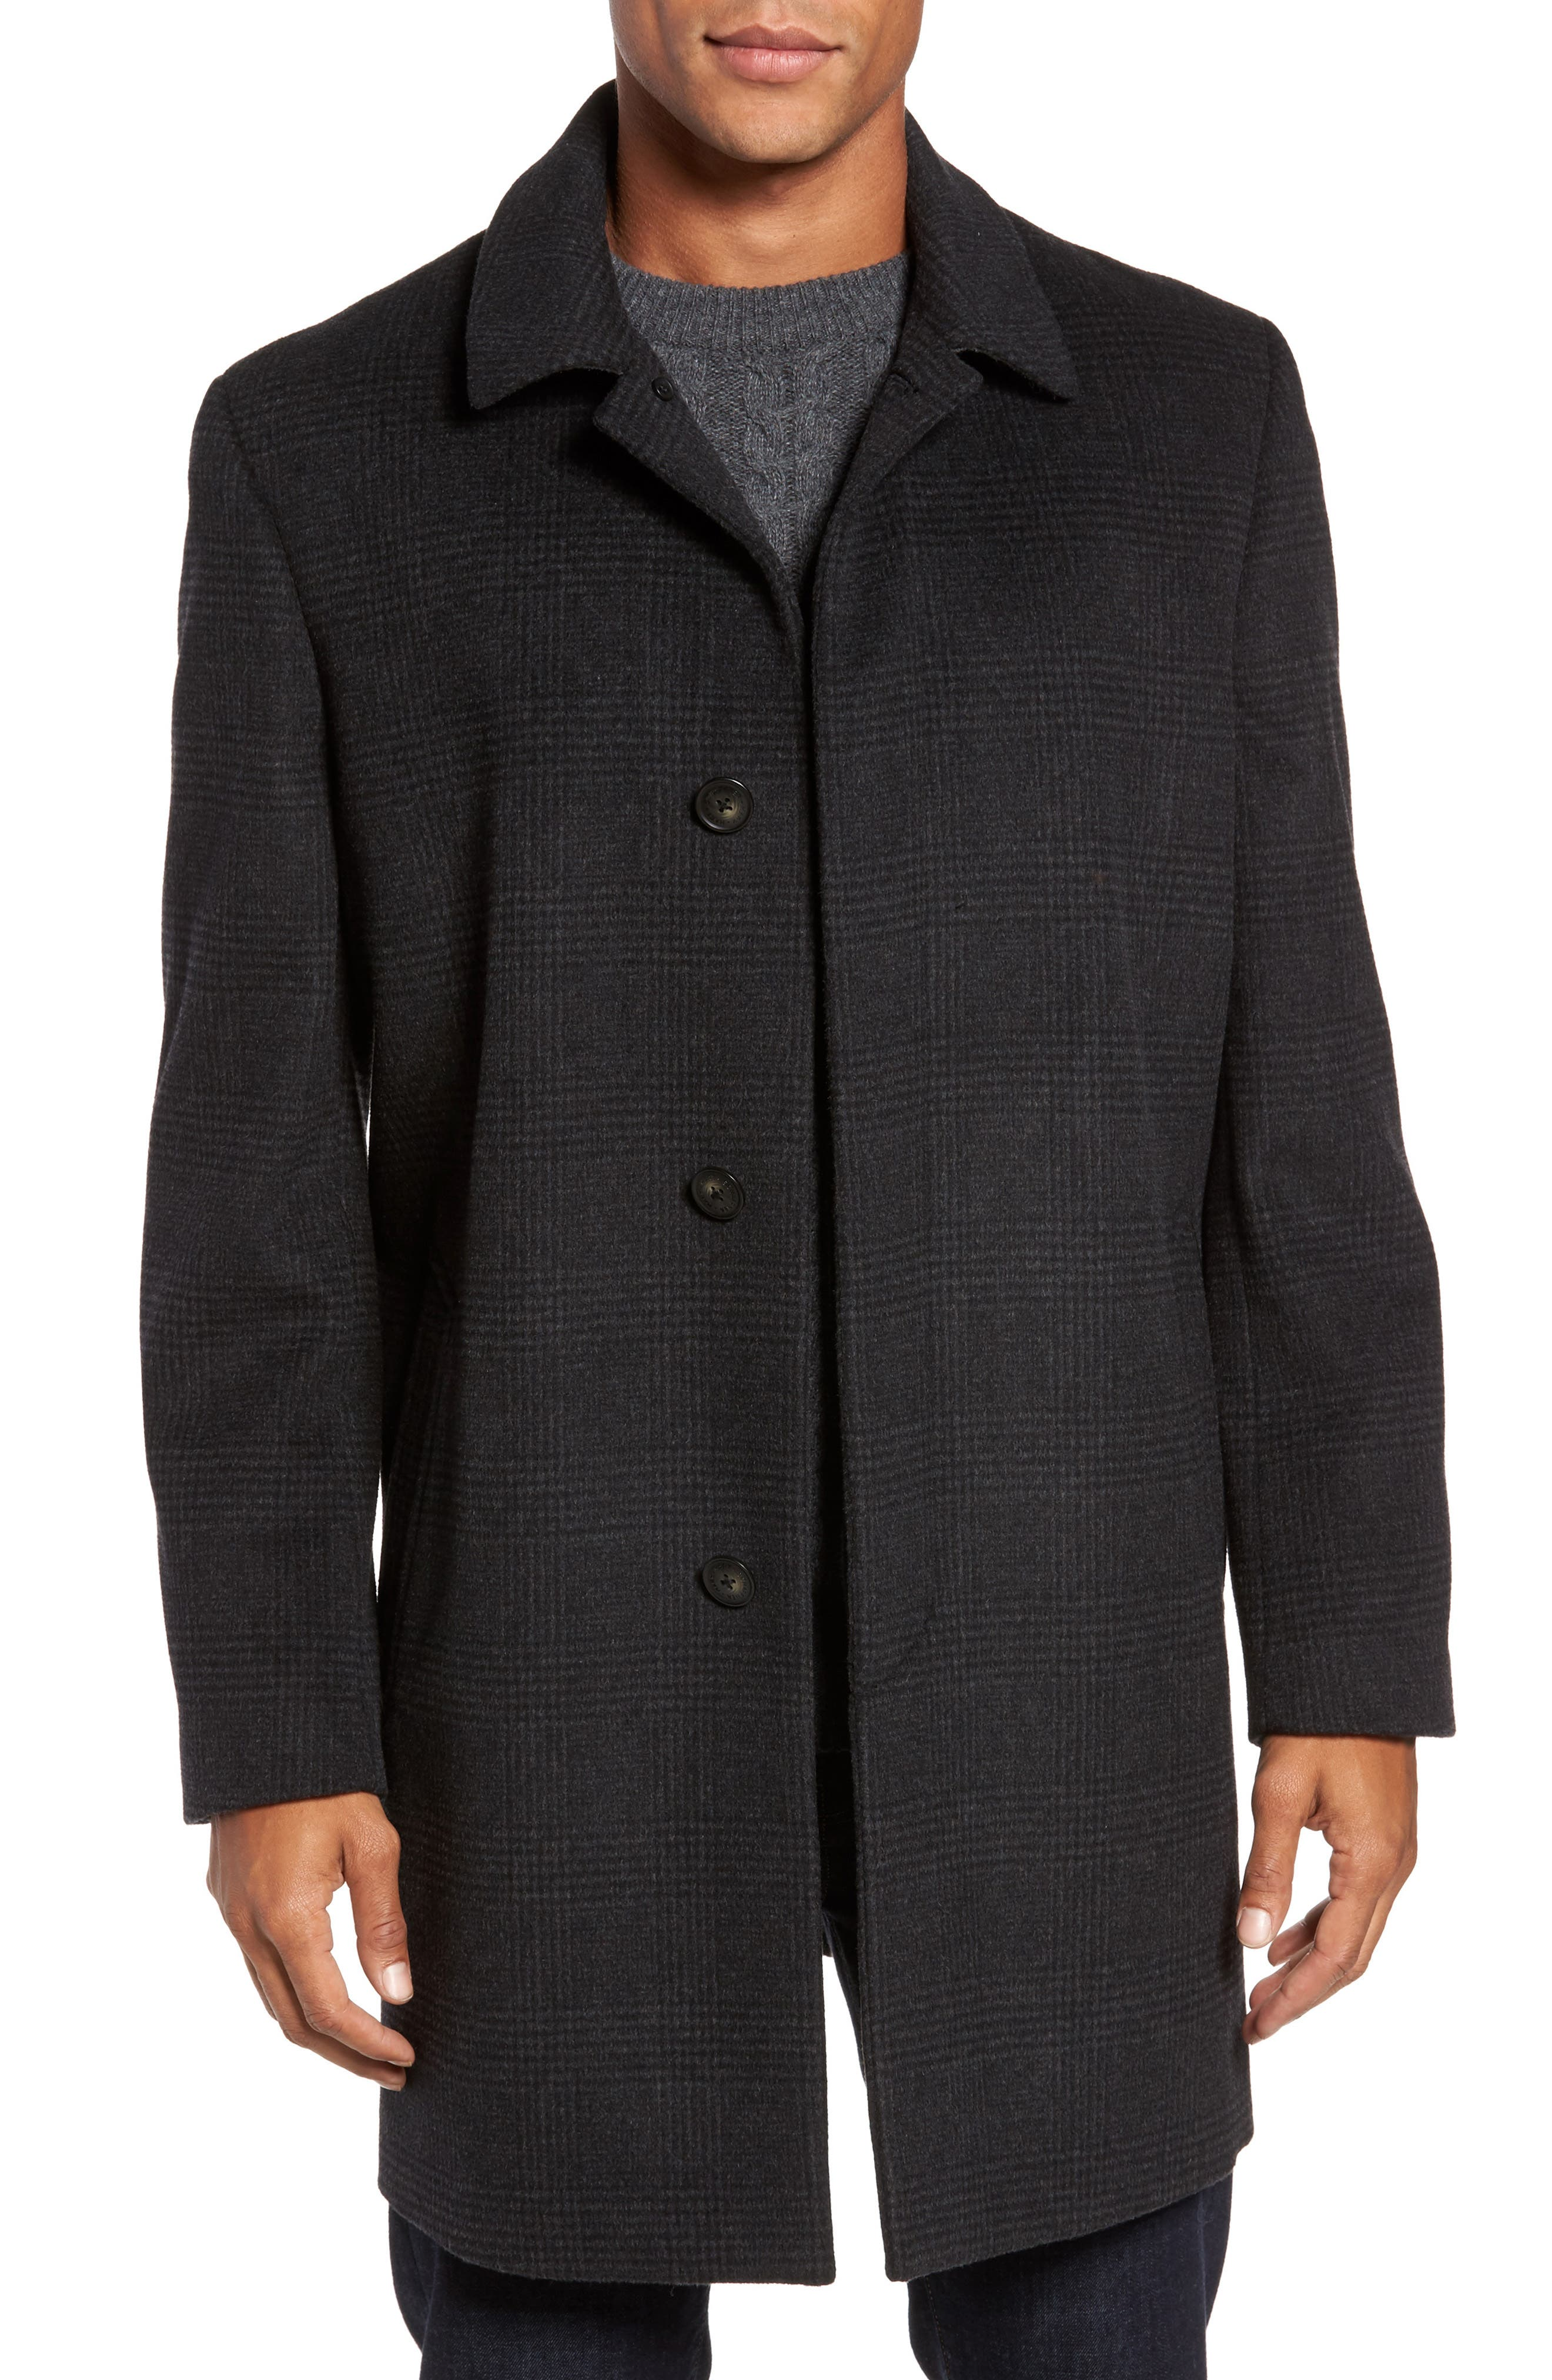 Turner Plaid Wool Blend Topcoat,                             Main thumbnail 1, color,                             011